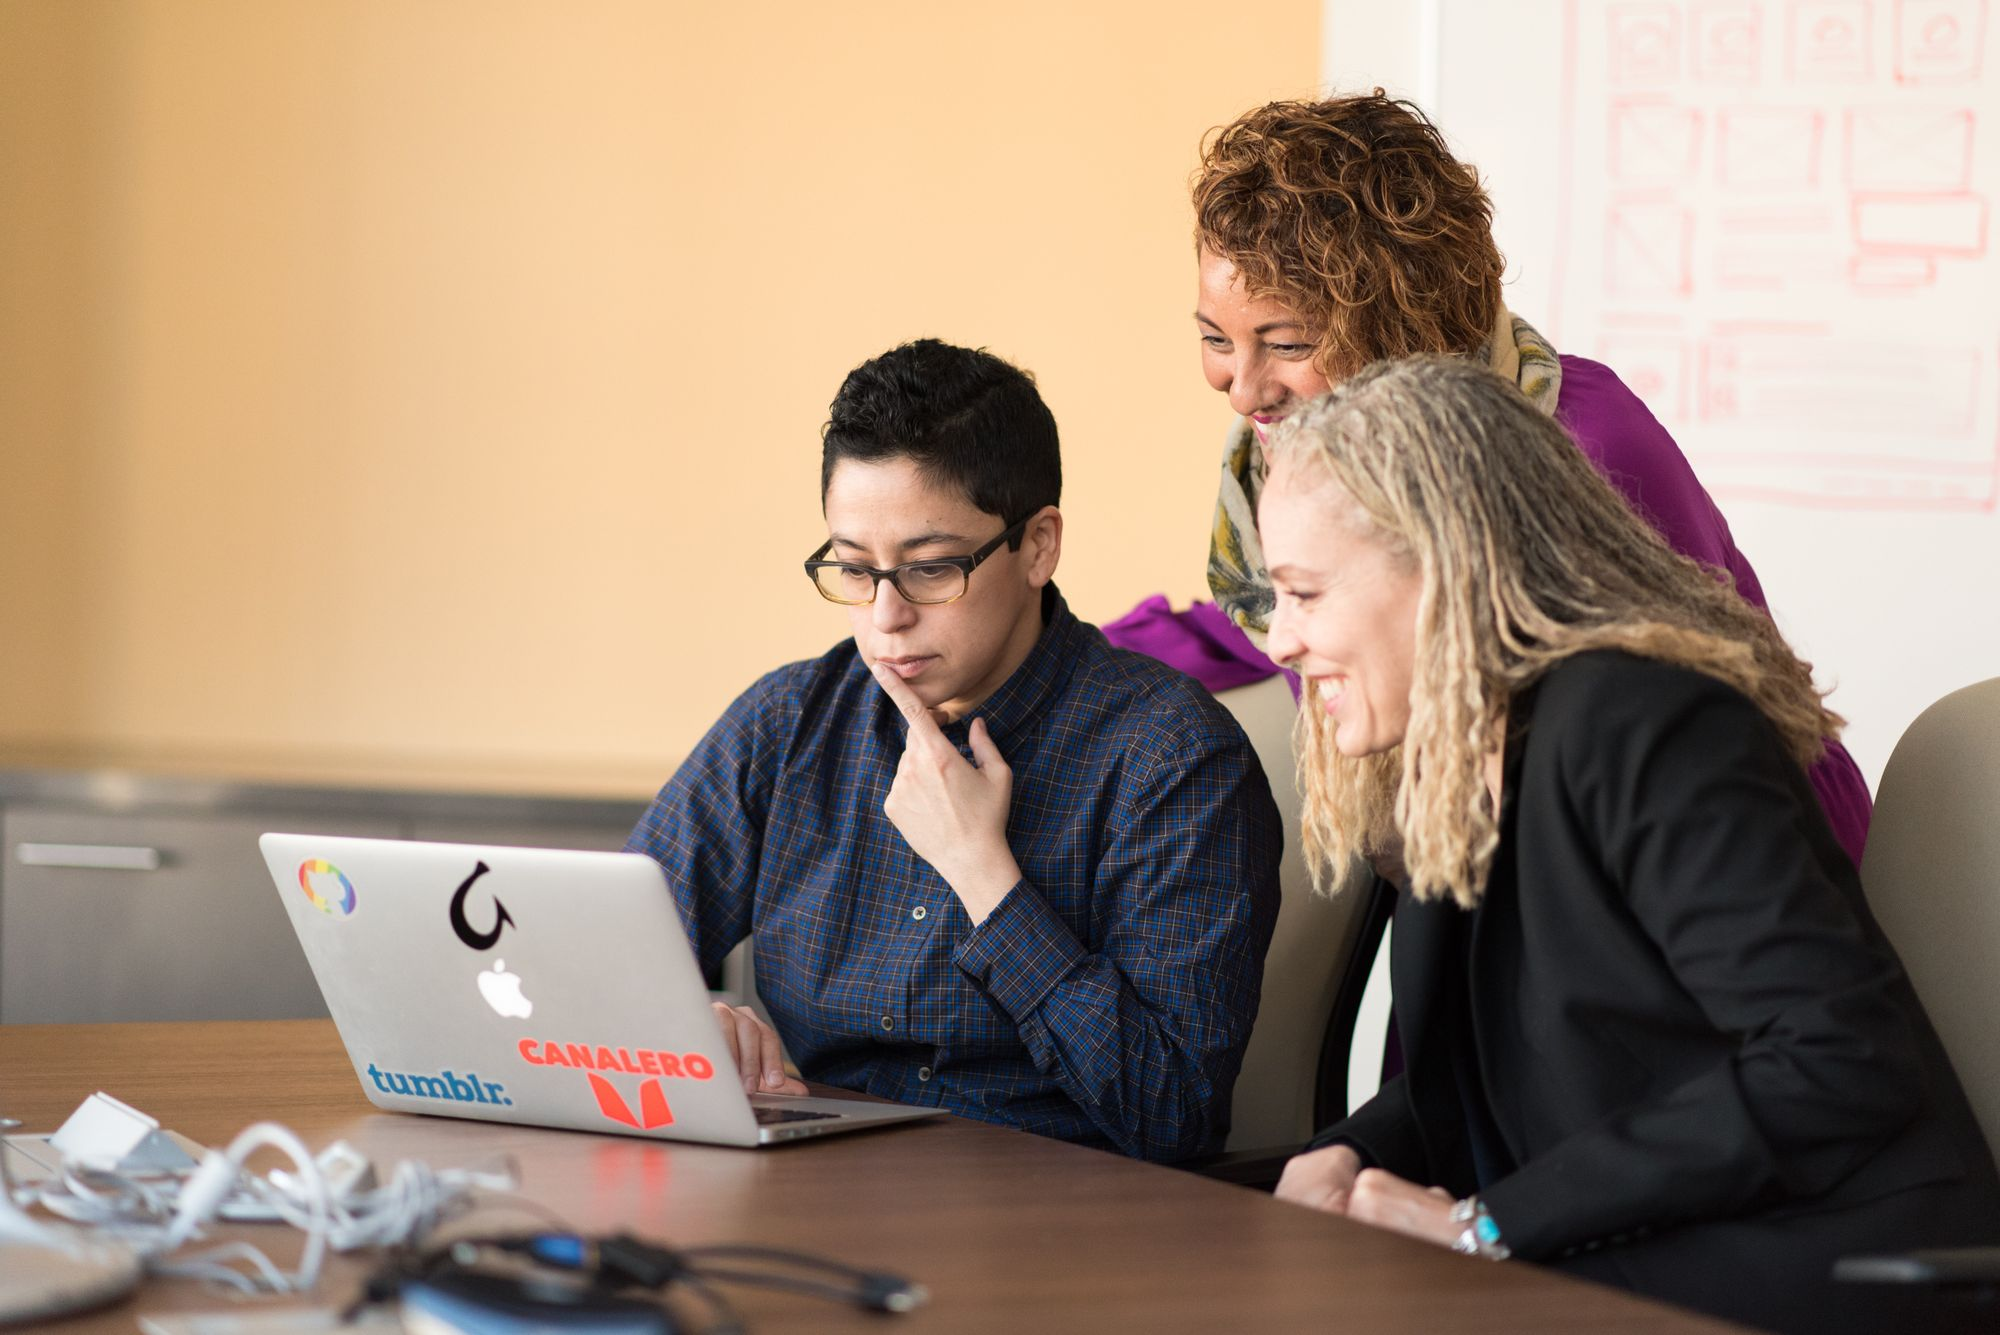 three people look at a laptop to collaborate